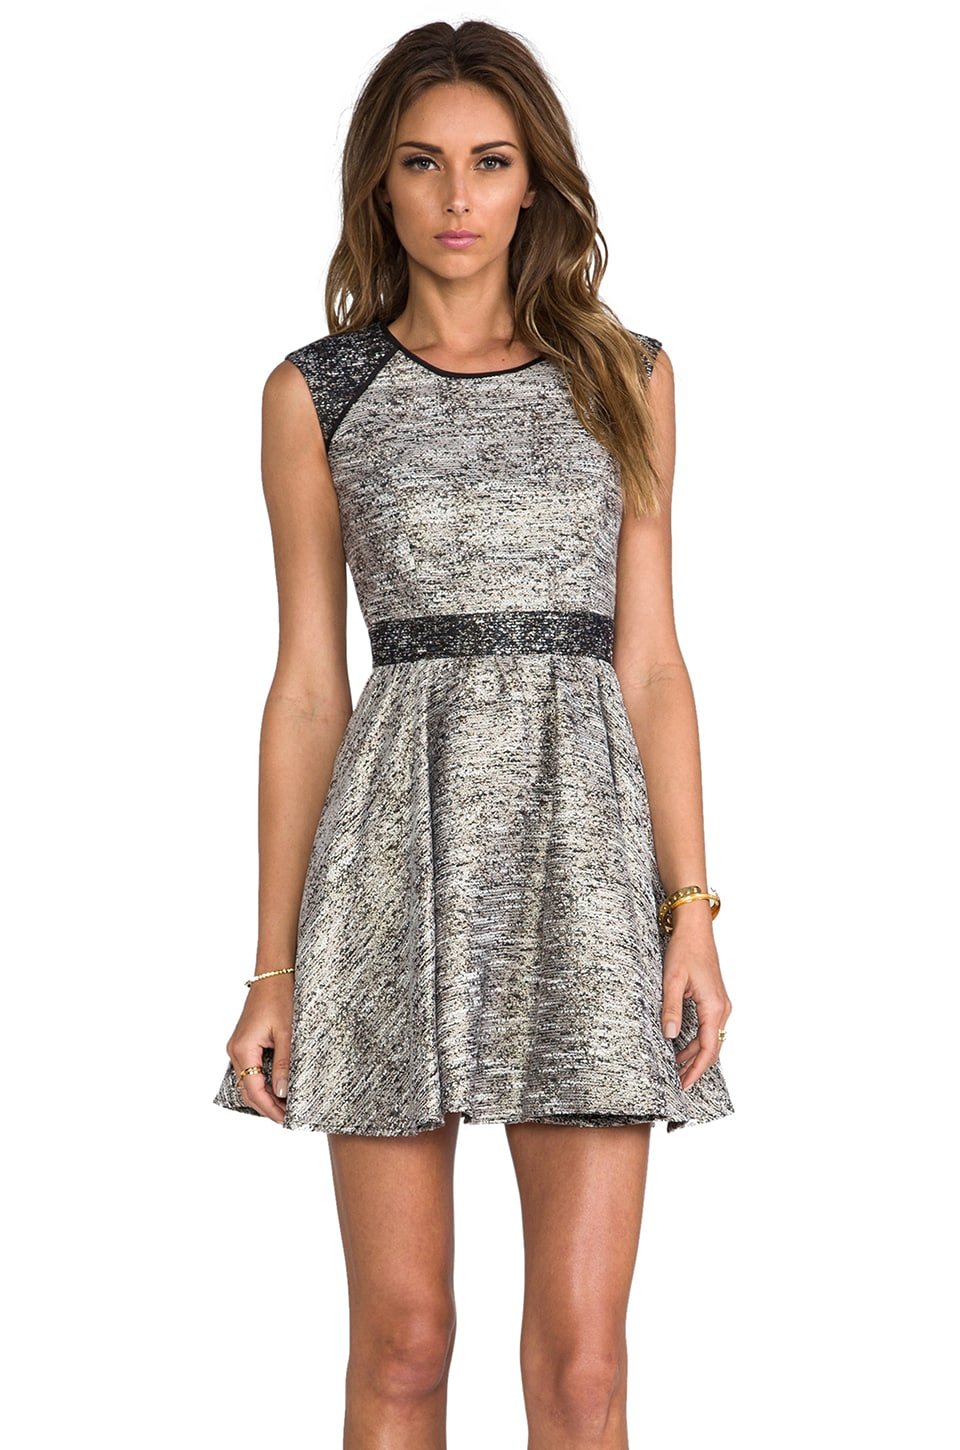 RACHEL ZOE Marley Flare Dress in Metallic Multi